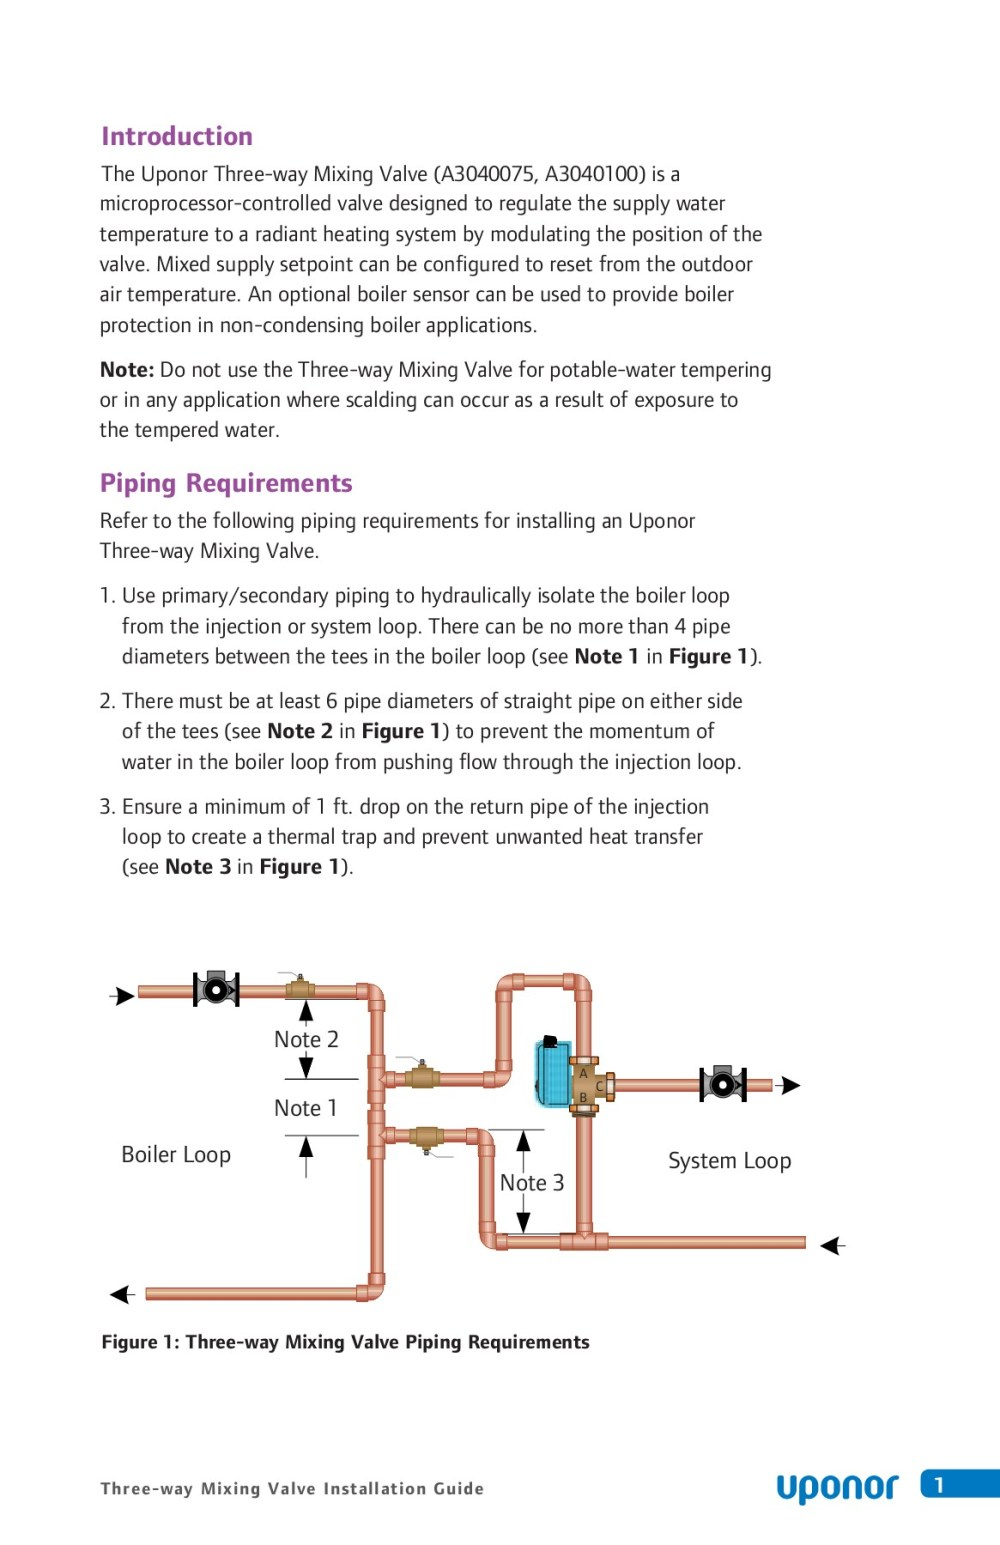 medium resolution of three way mixing valve installation guide uponor pro pages 1 18 text version anyflip